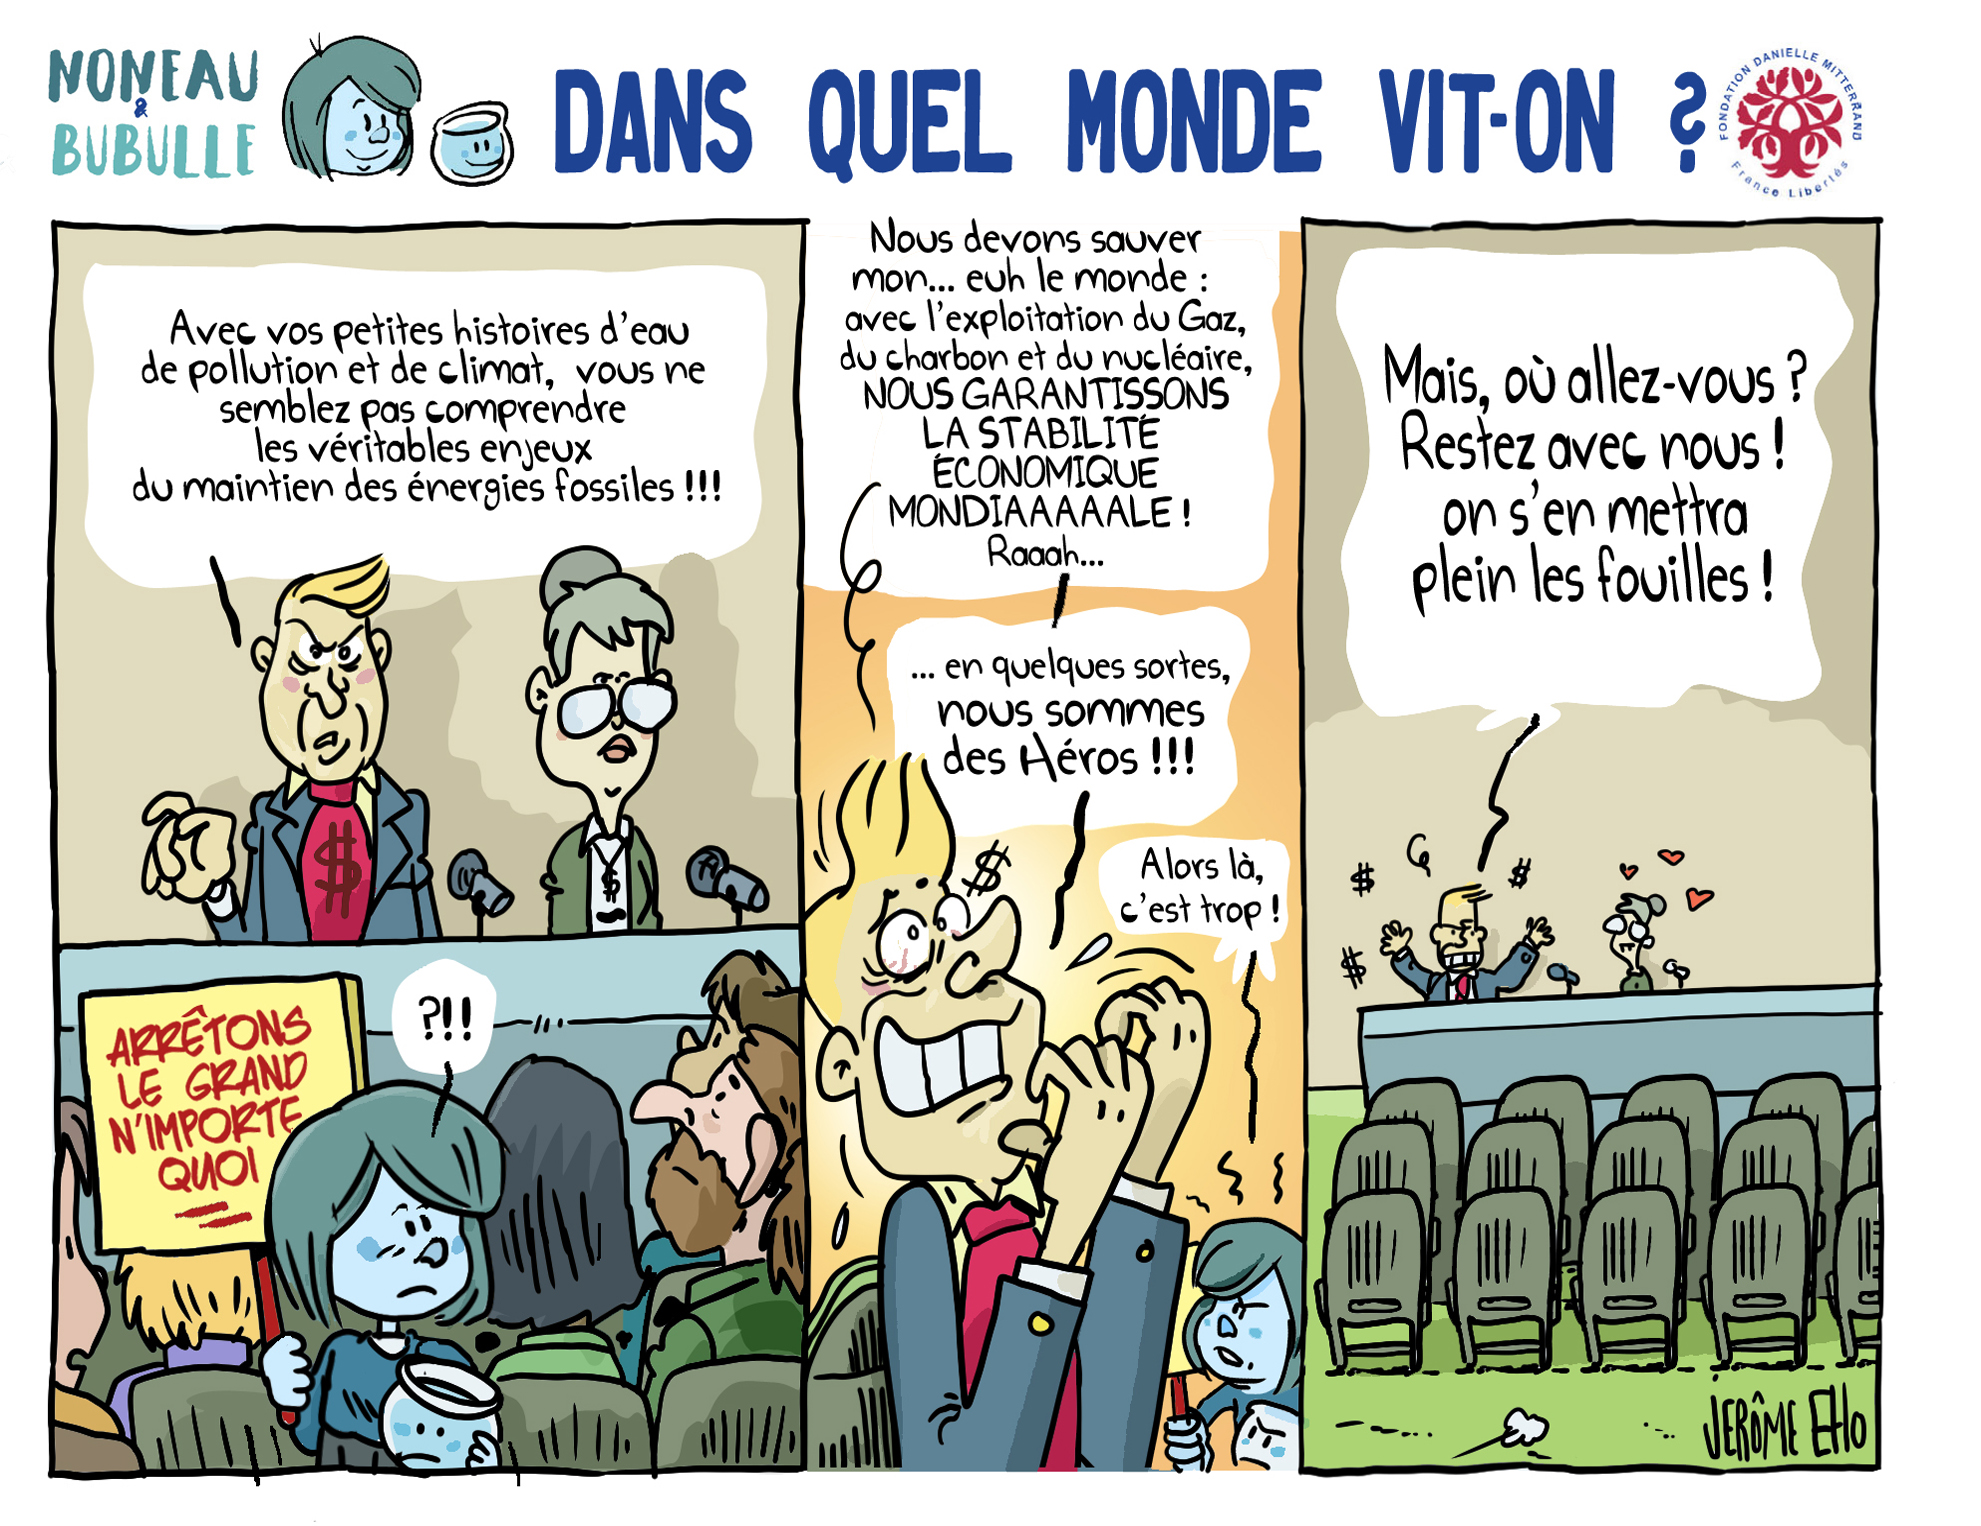 Dans quel monde vit on - Jerome Eho